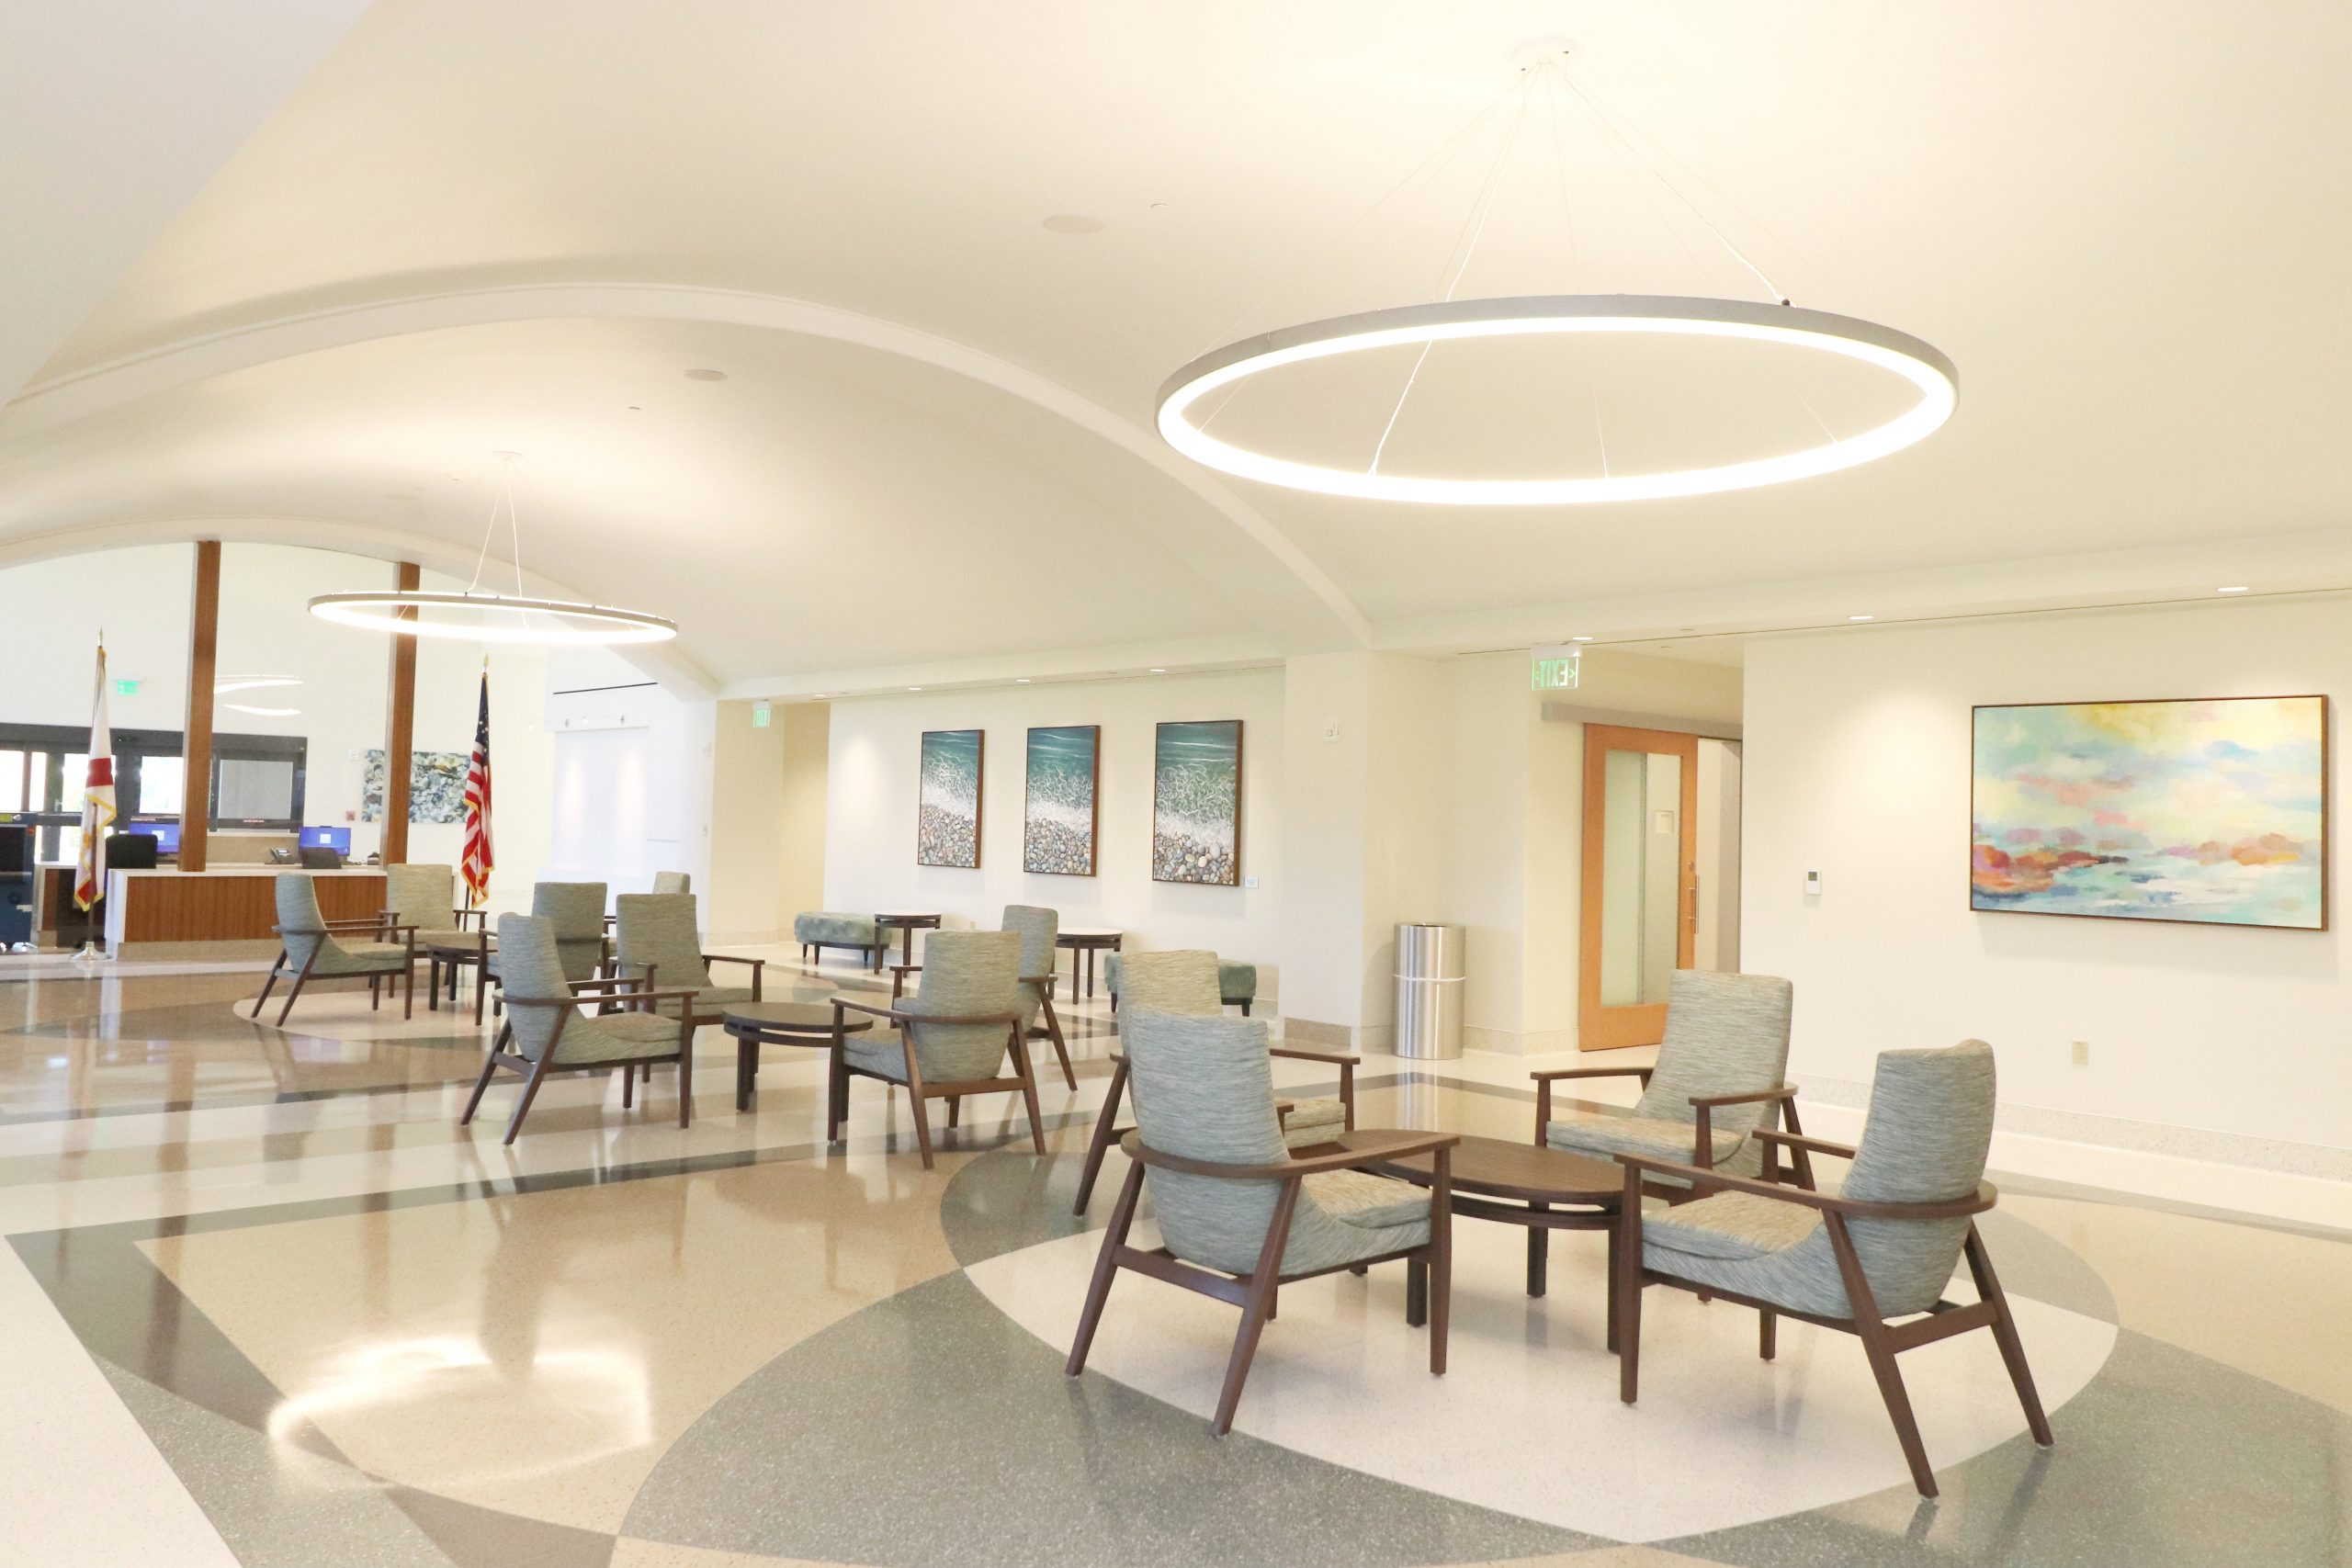 Image Featuring inside lobby area at Medical Center of Deltona